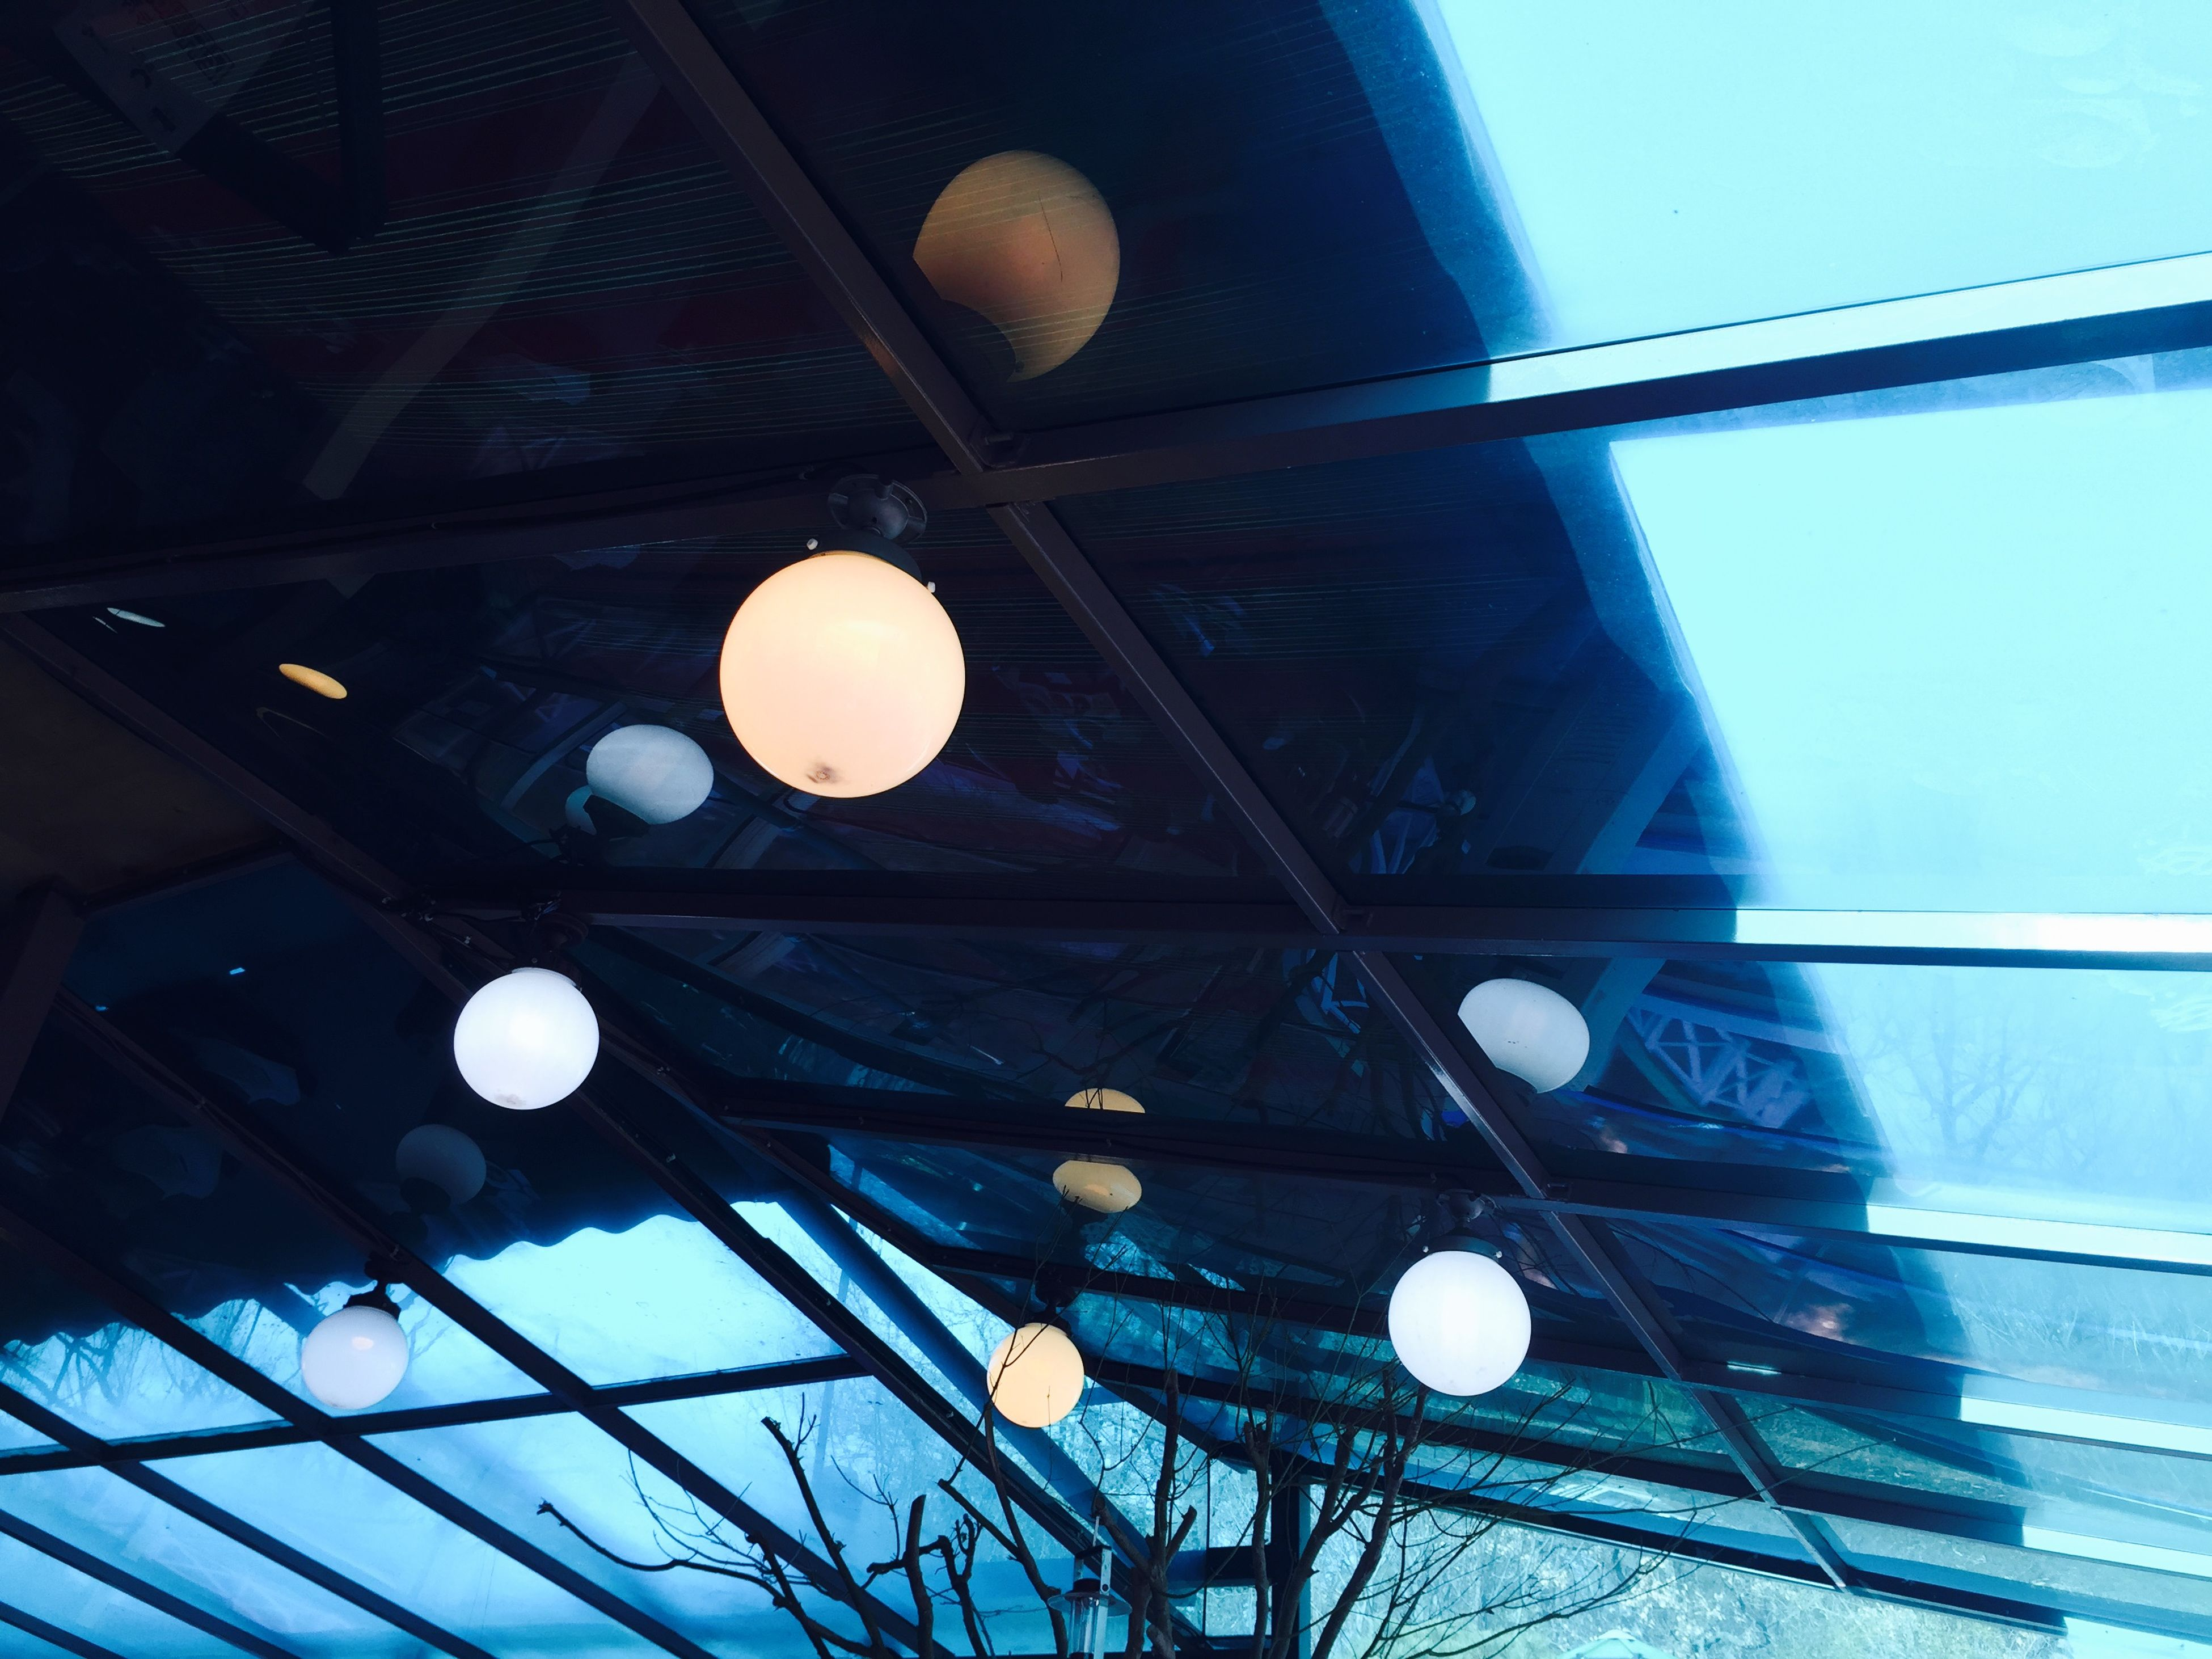 low angle view, lighting equipment, illuminated, sky, hanging, electricity, built structure, ceiling, architecture, light bulb, blue, electric light, moon, night, decoration, sphere, electric lamp, indoors, no people, street light